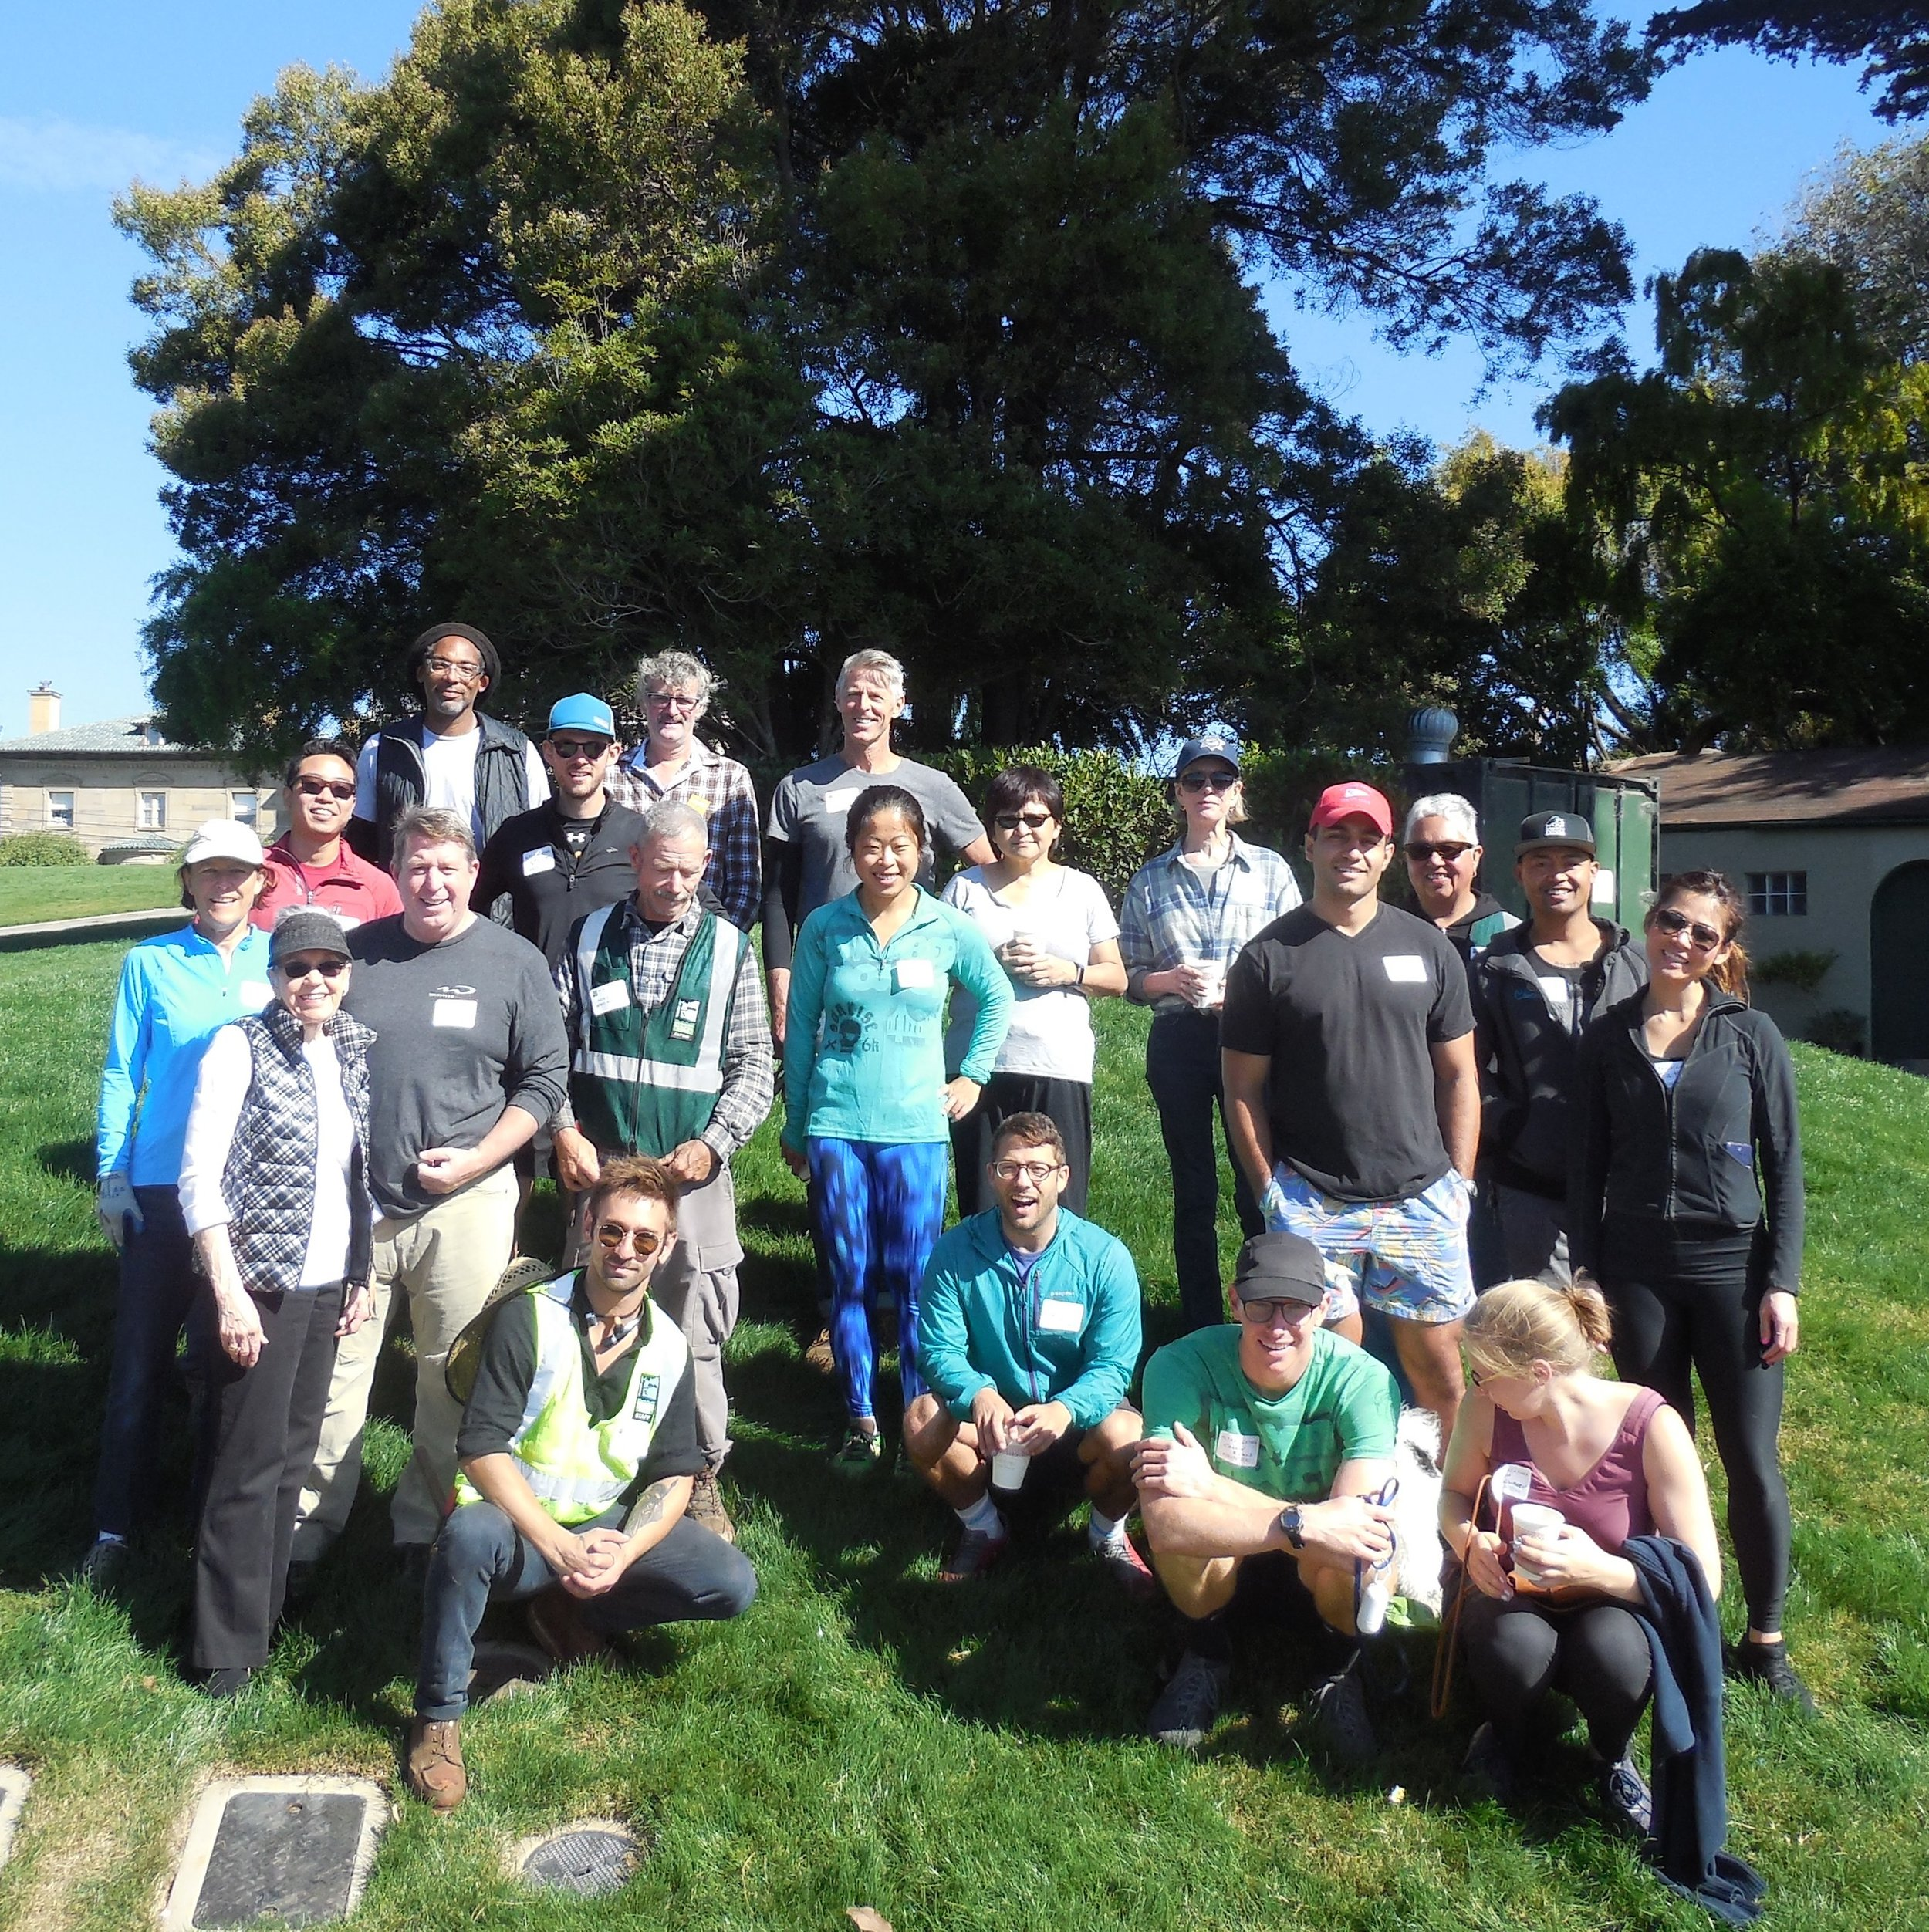 Friends of Alta Plaza Park and a number of volunteers gathered for a quarterly clean-up day. - Saturday, September 8th, 2018